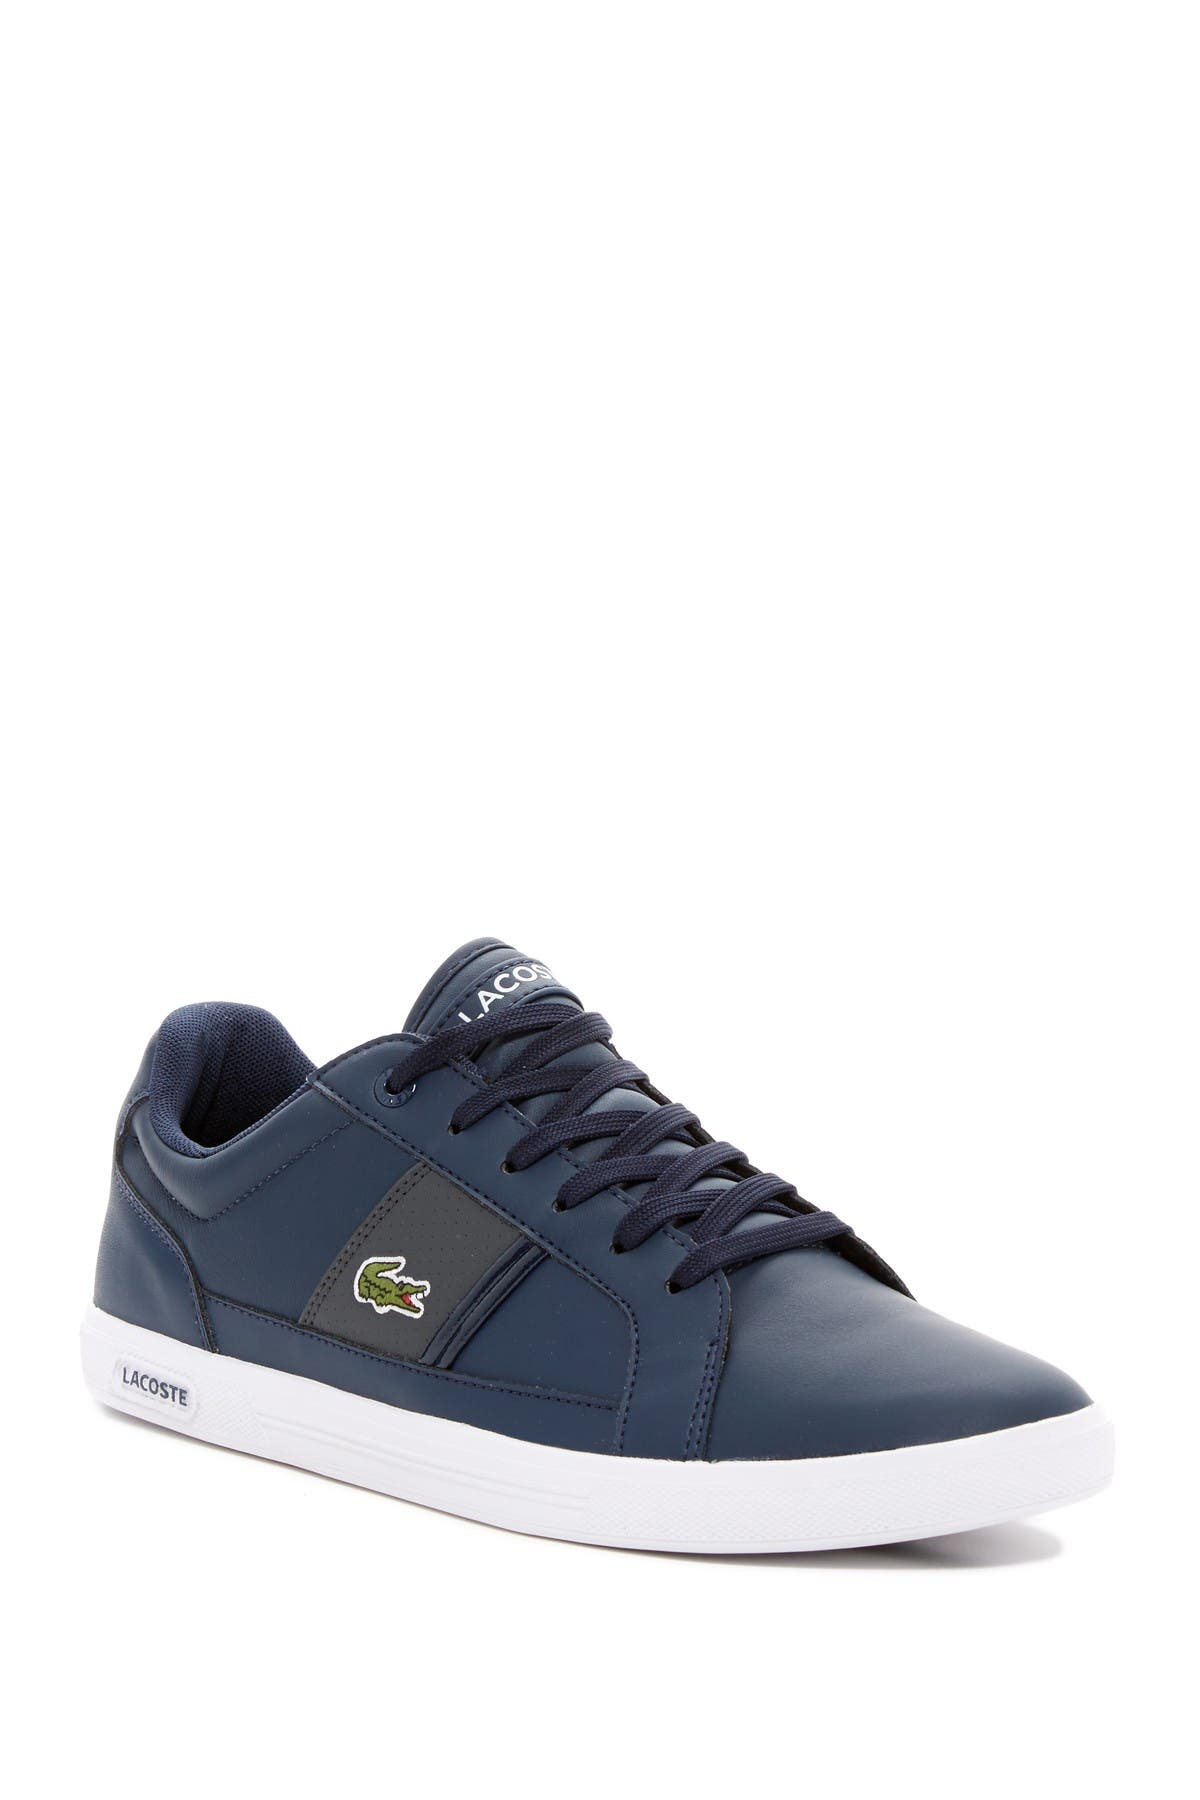 Image of Lacoste Europa Leather Sneaker